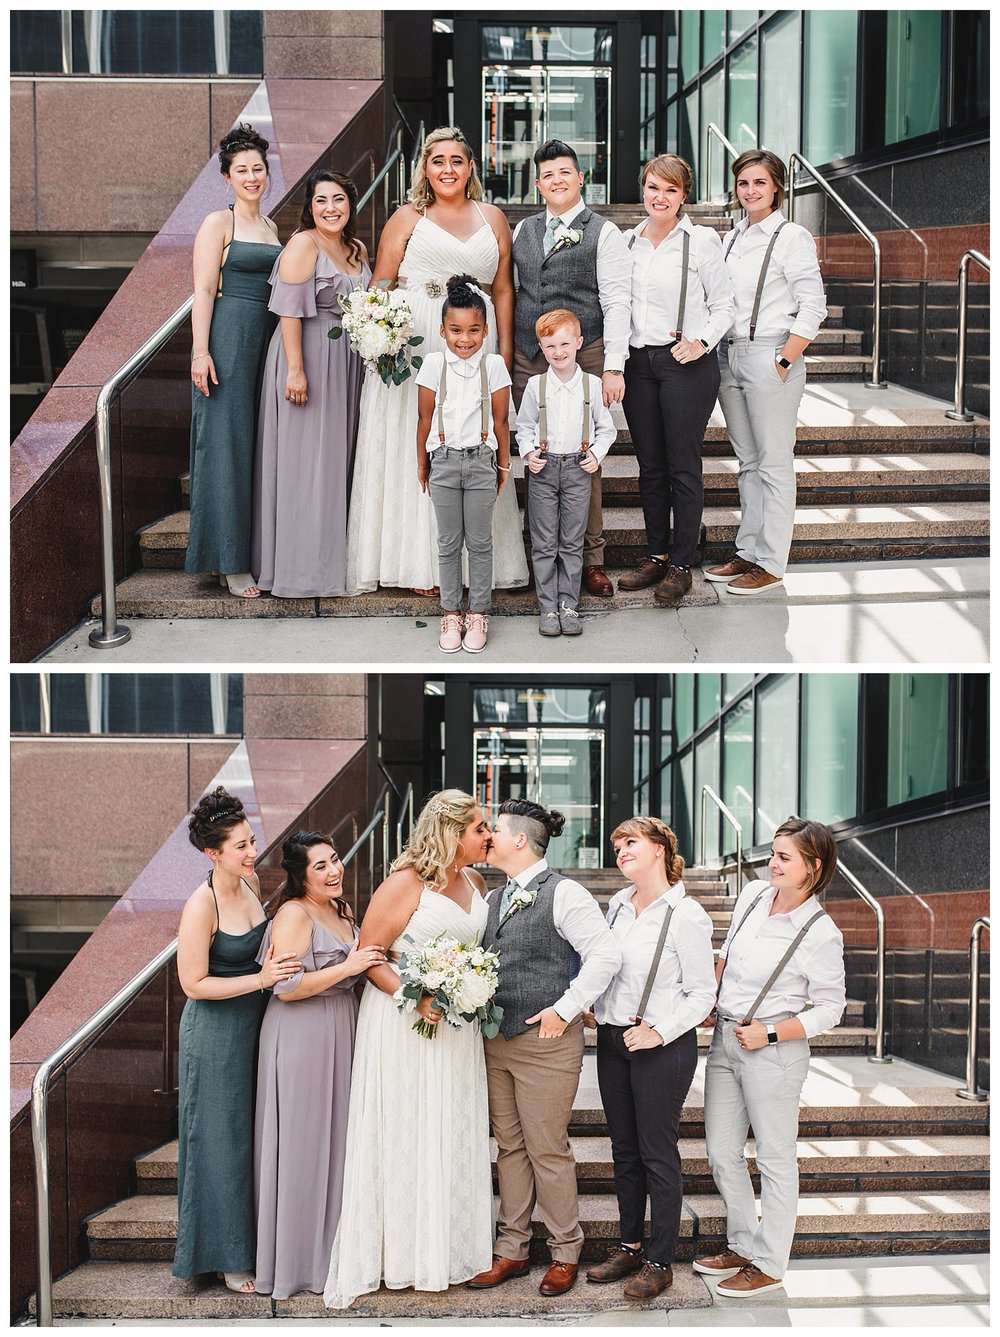 Kelsey_Diane_Photography_The_Vow_Exchange_Kansas_City_LGBT_Friendly_Wedding_Photographer_Kansas_City_Scout_Ica_0718.jpg